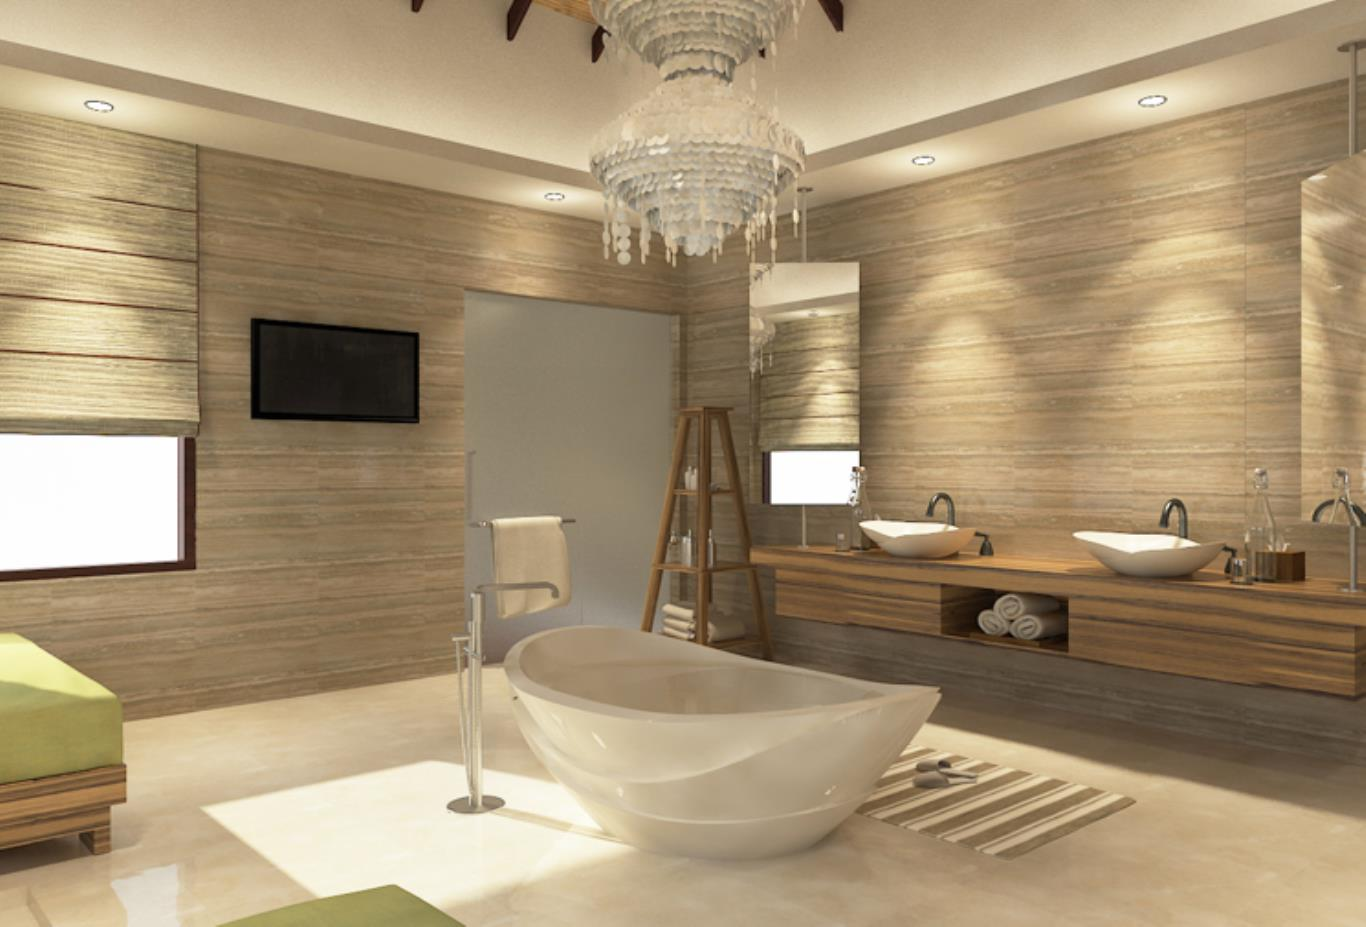 The sanctuary master bathroom